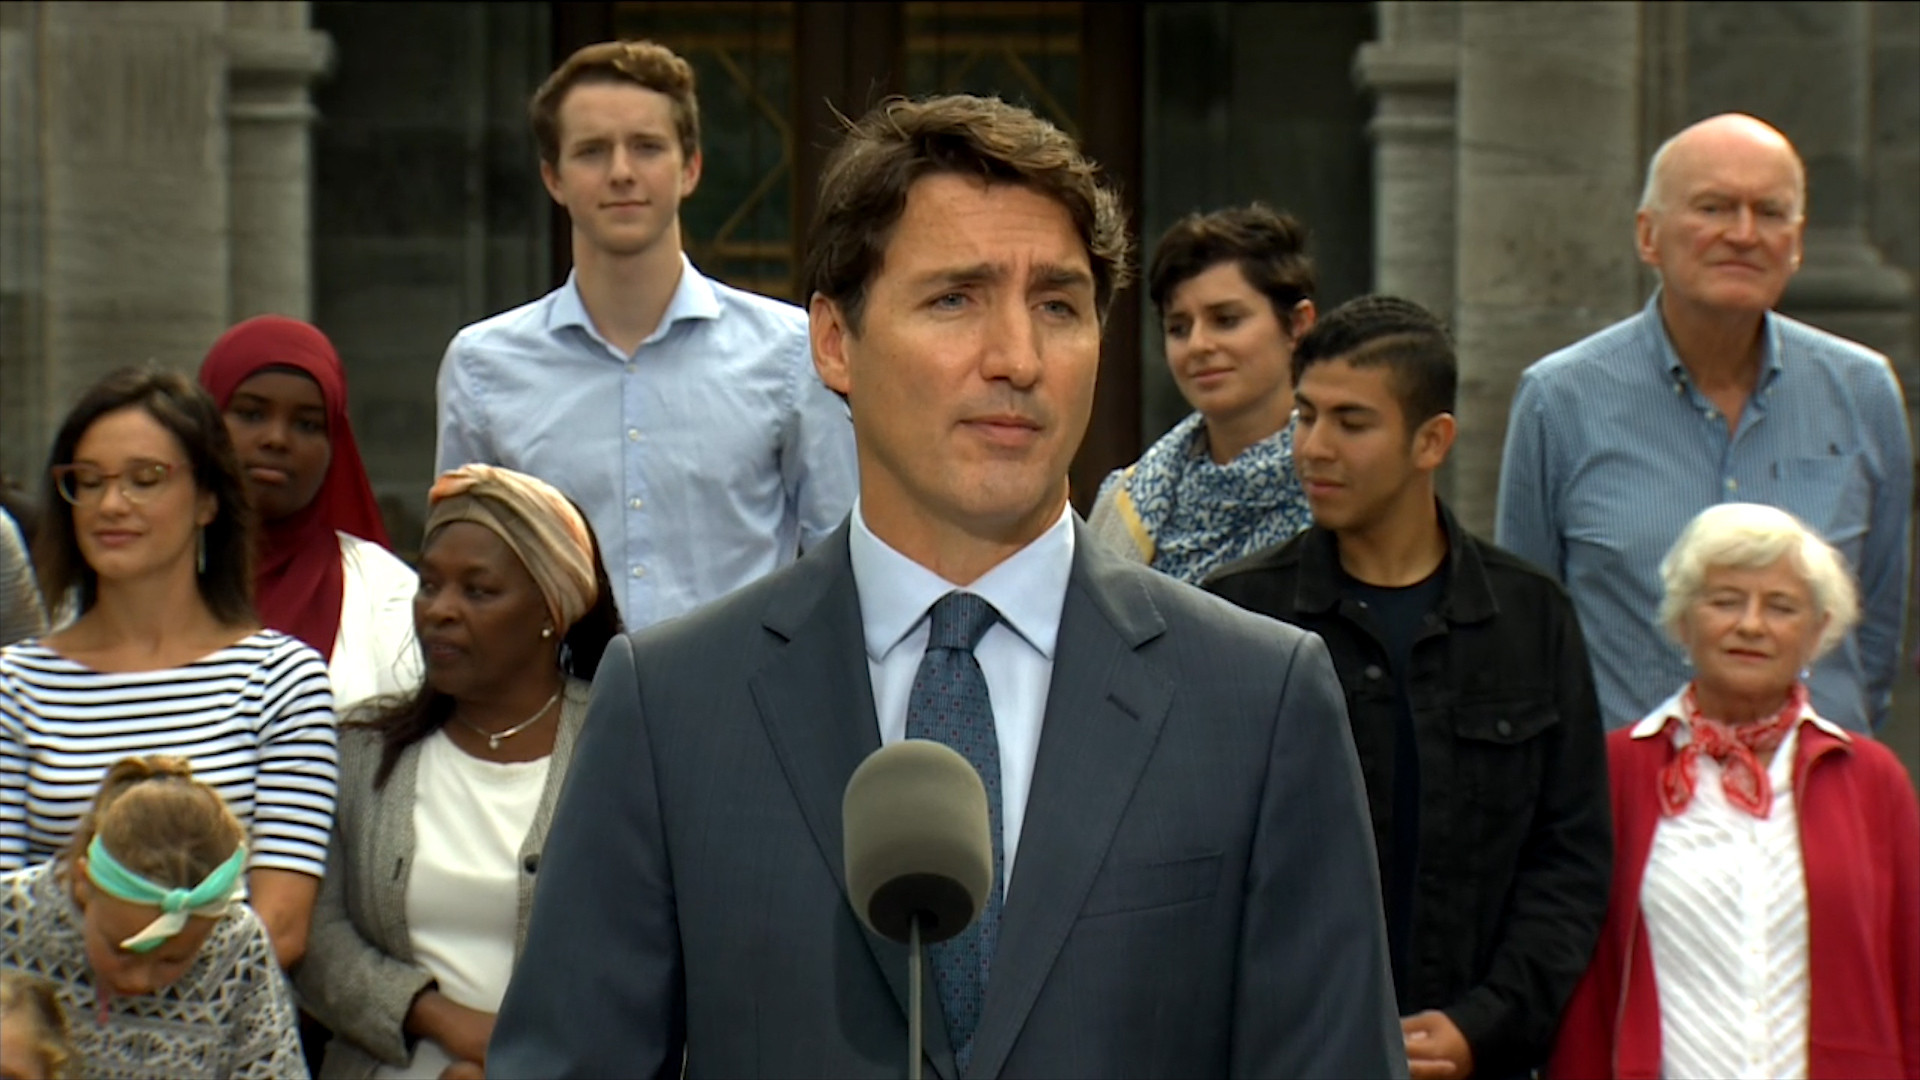 Federal Election 2019: Trudeau defends government position on cabinet confidentiality